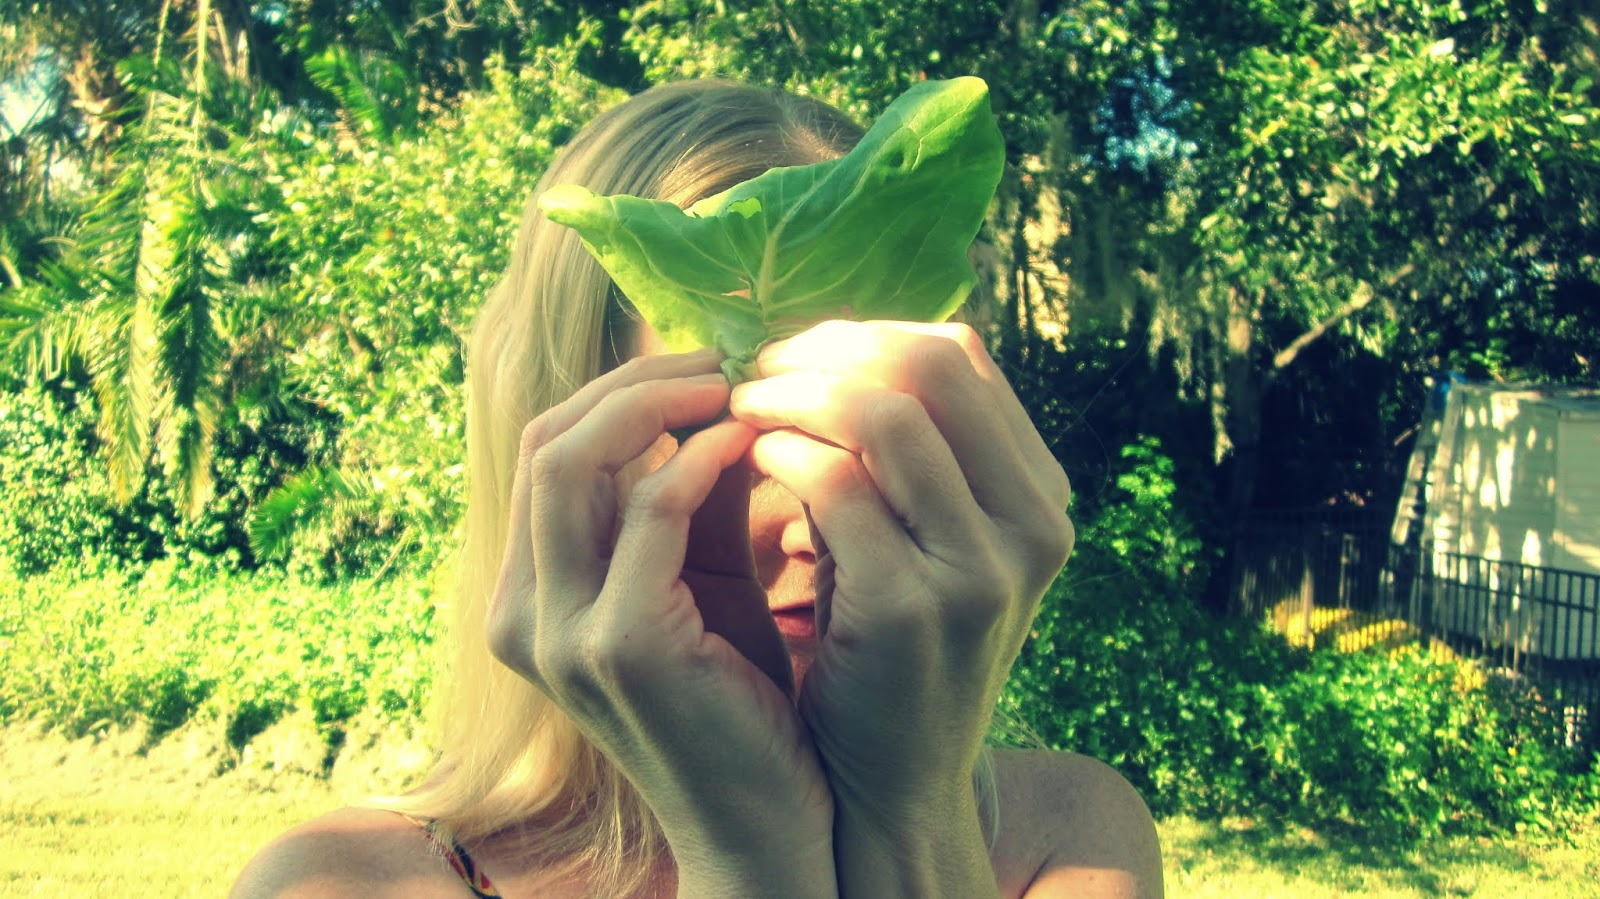 A blonde woman holding a butter lettuce leaf wrap over her eyes in the palm tree backdrop of a Florida Lifestyle